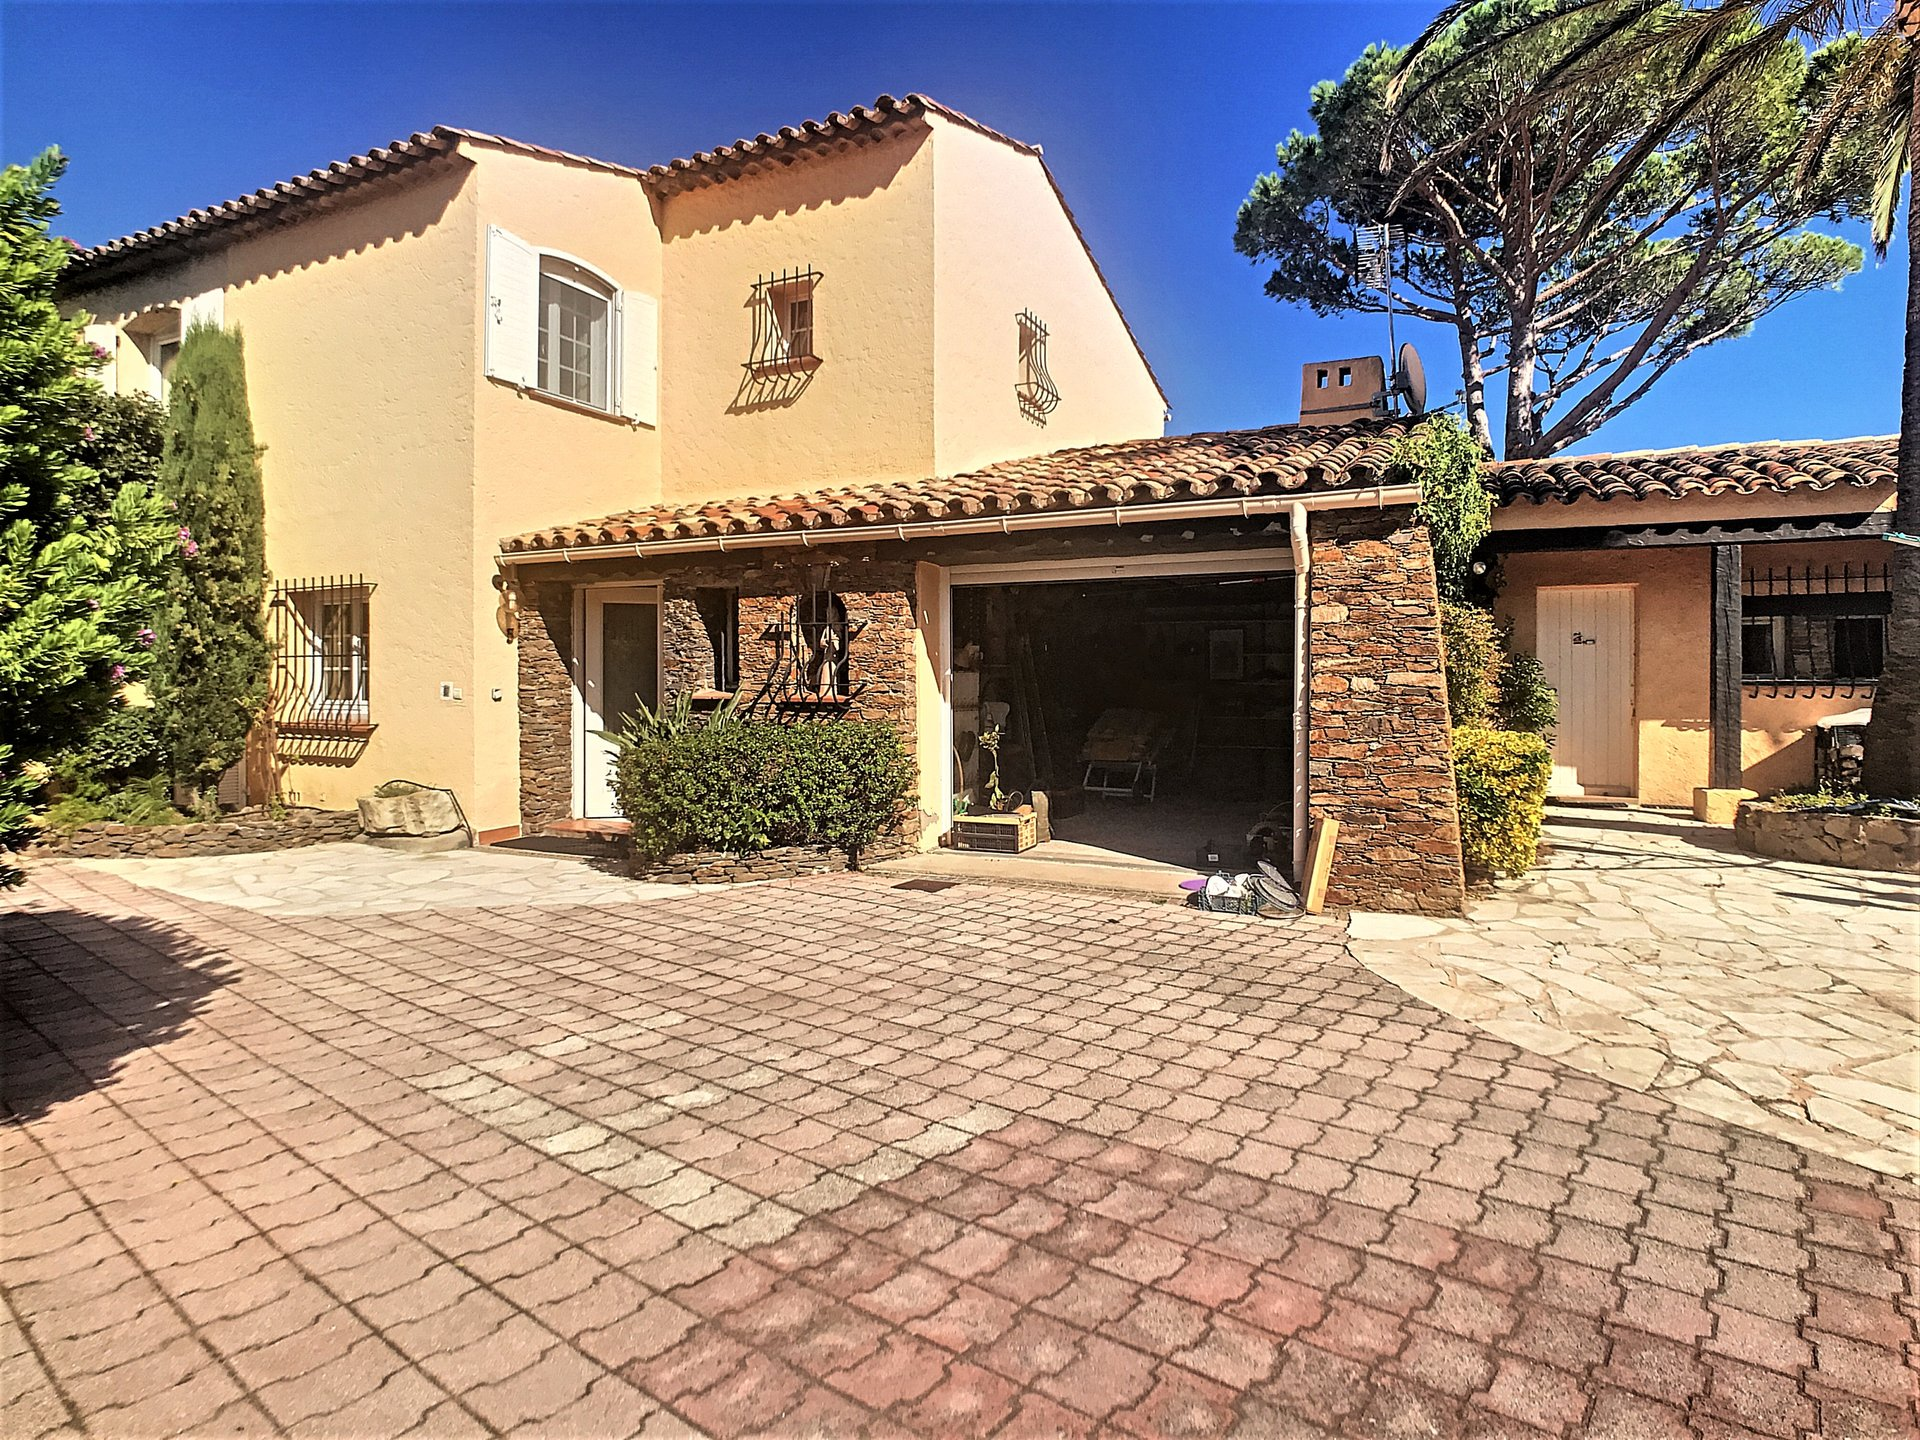 For sale beach house in Les Issambres sea view